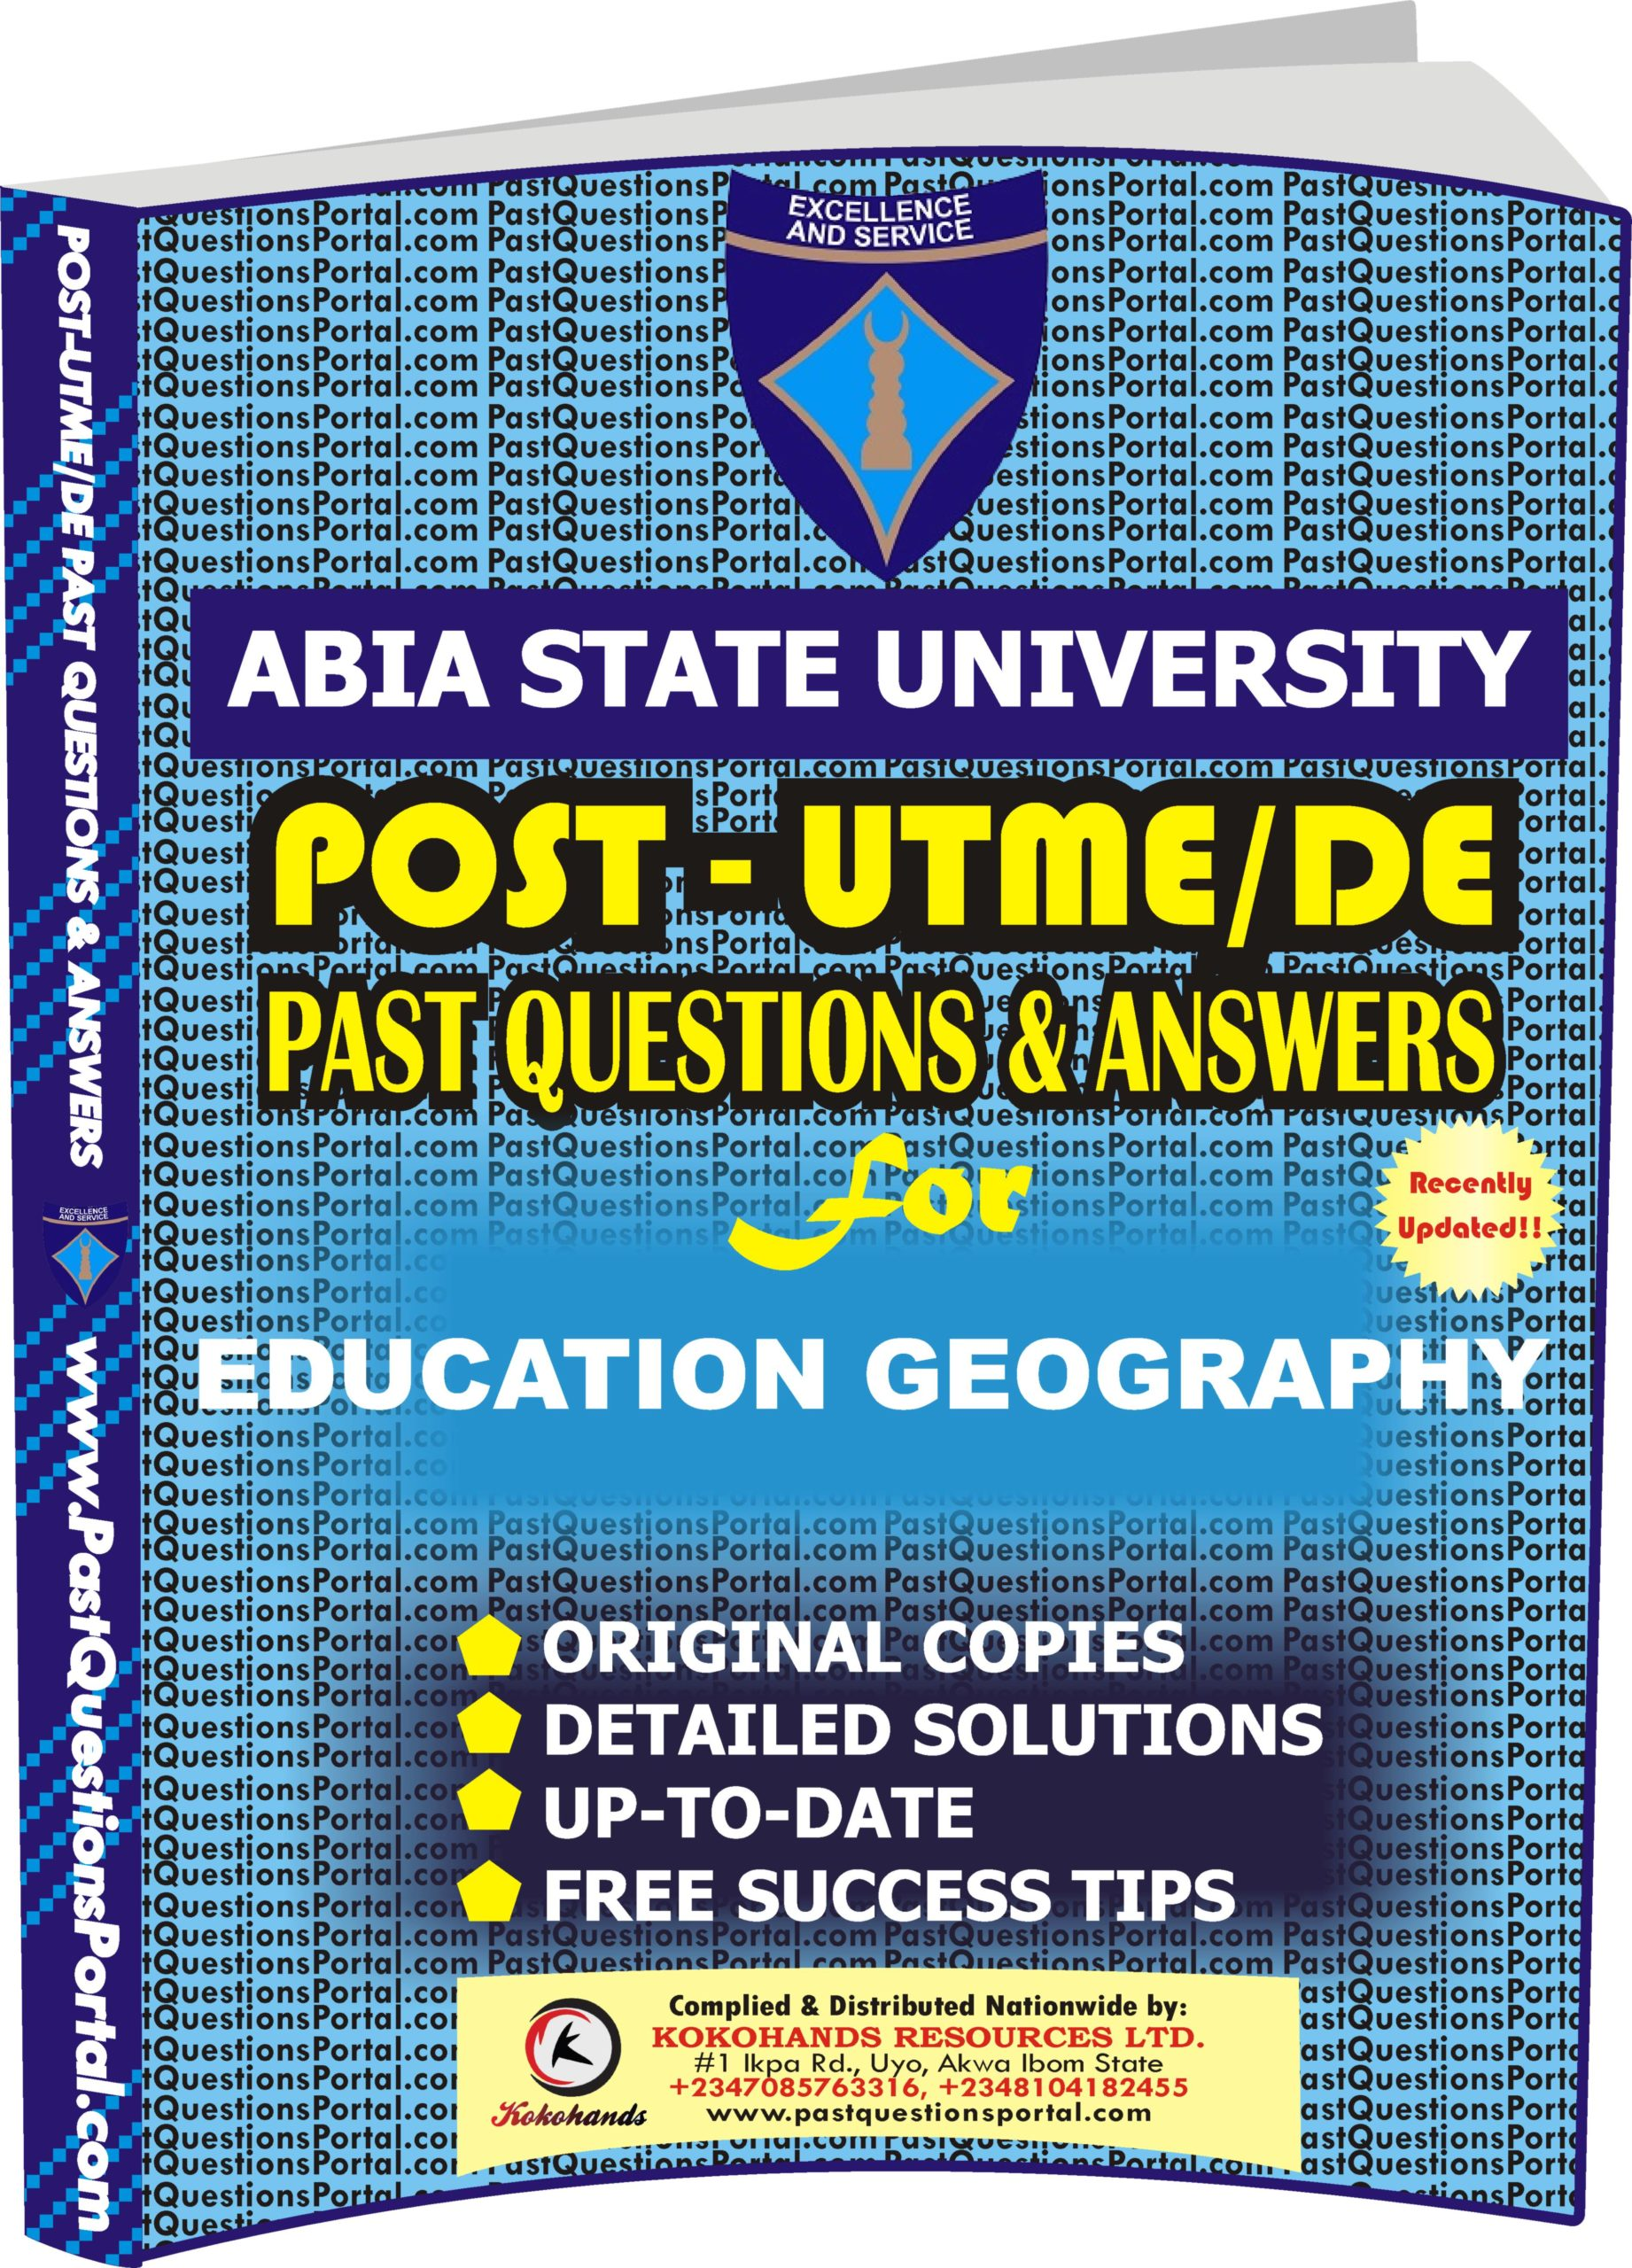 ABSU Post UTME Past Questions for EDUCATION GEOGRAPHY